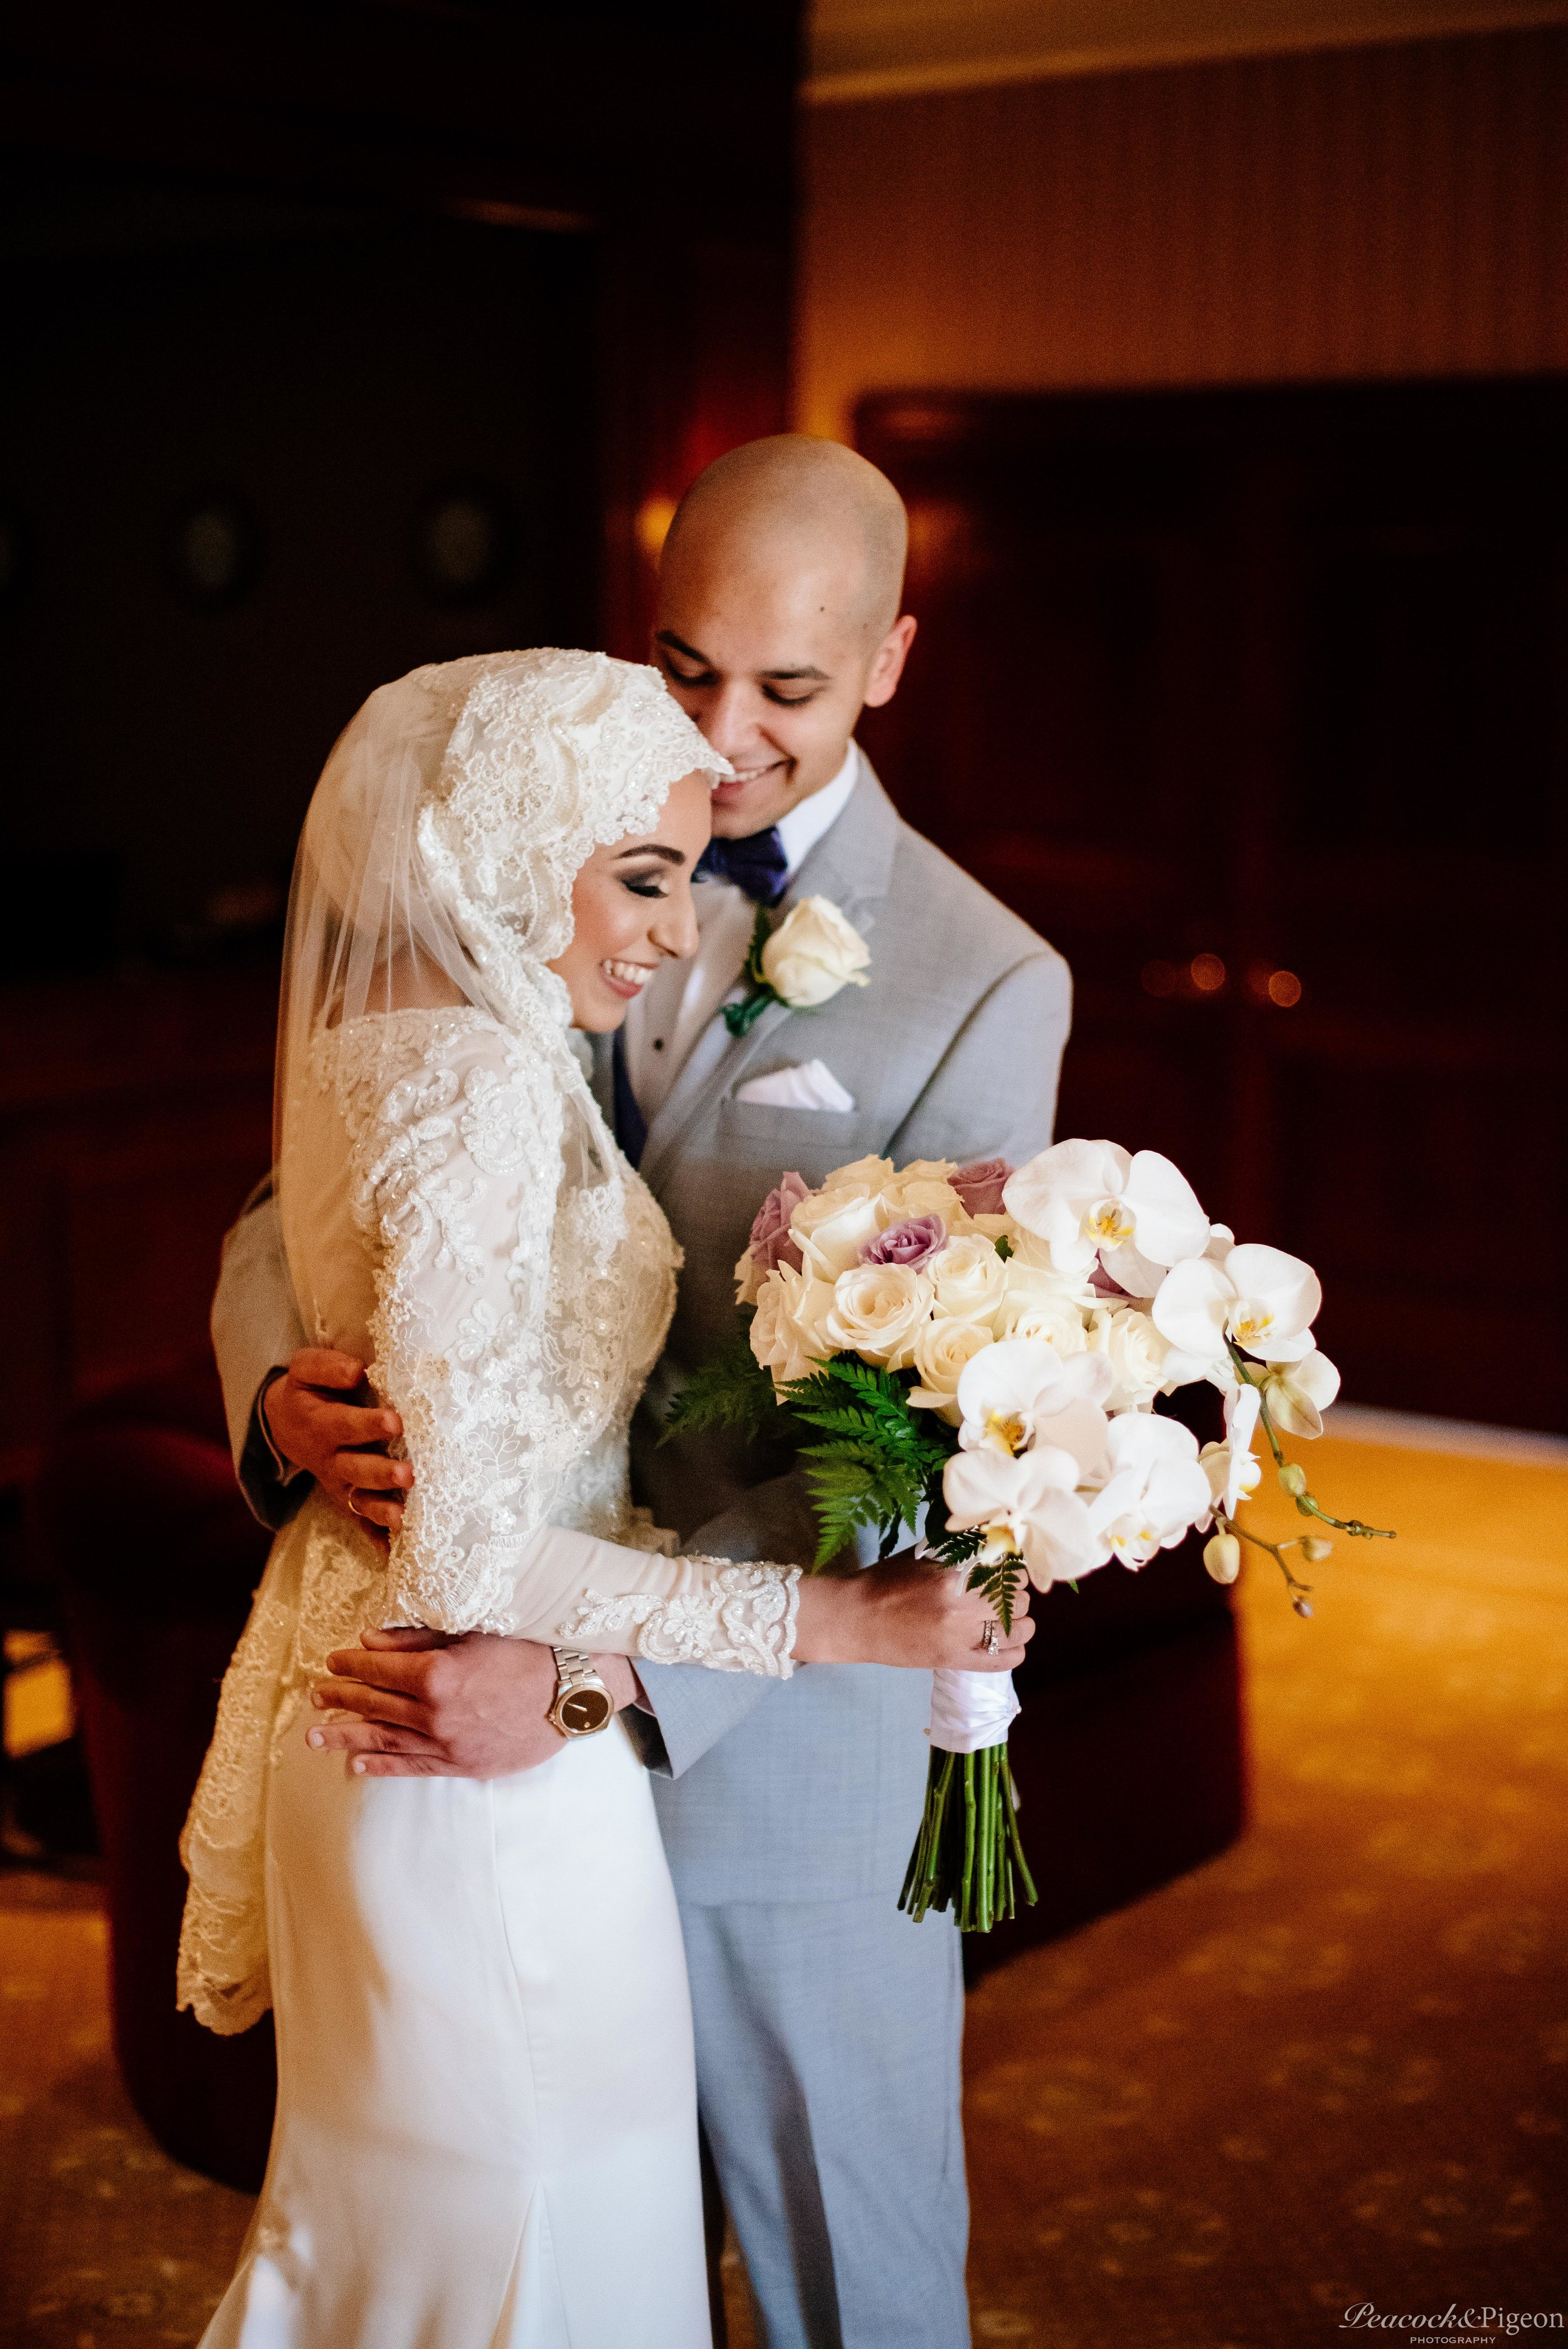 The_Wedding_of_Radwa_and_Kareem_at_Somerset_Palace_Part_Four_The_Reveal-Watermarked-22.jpg